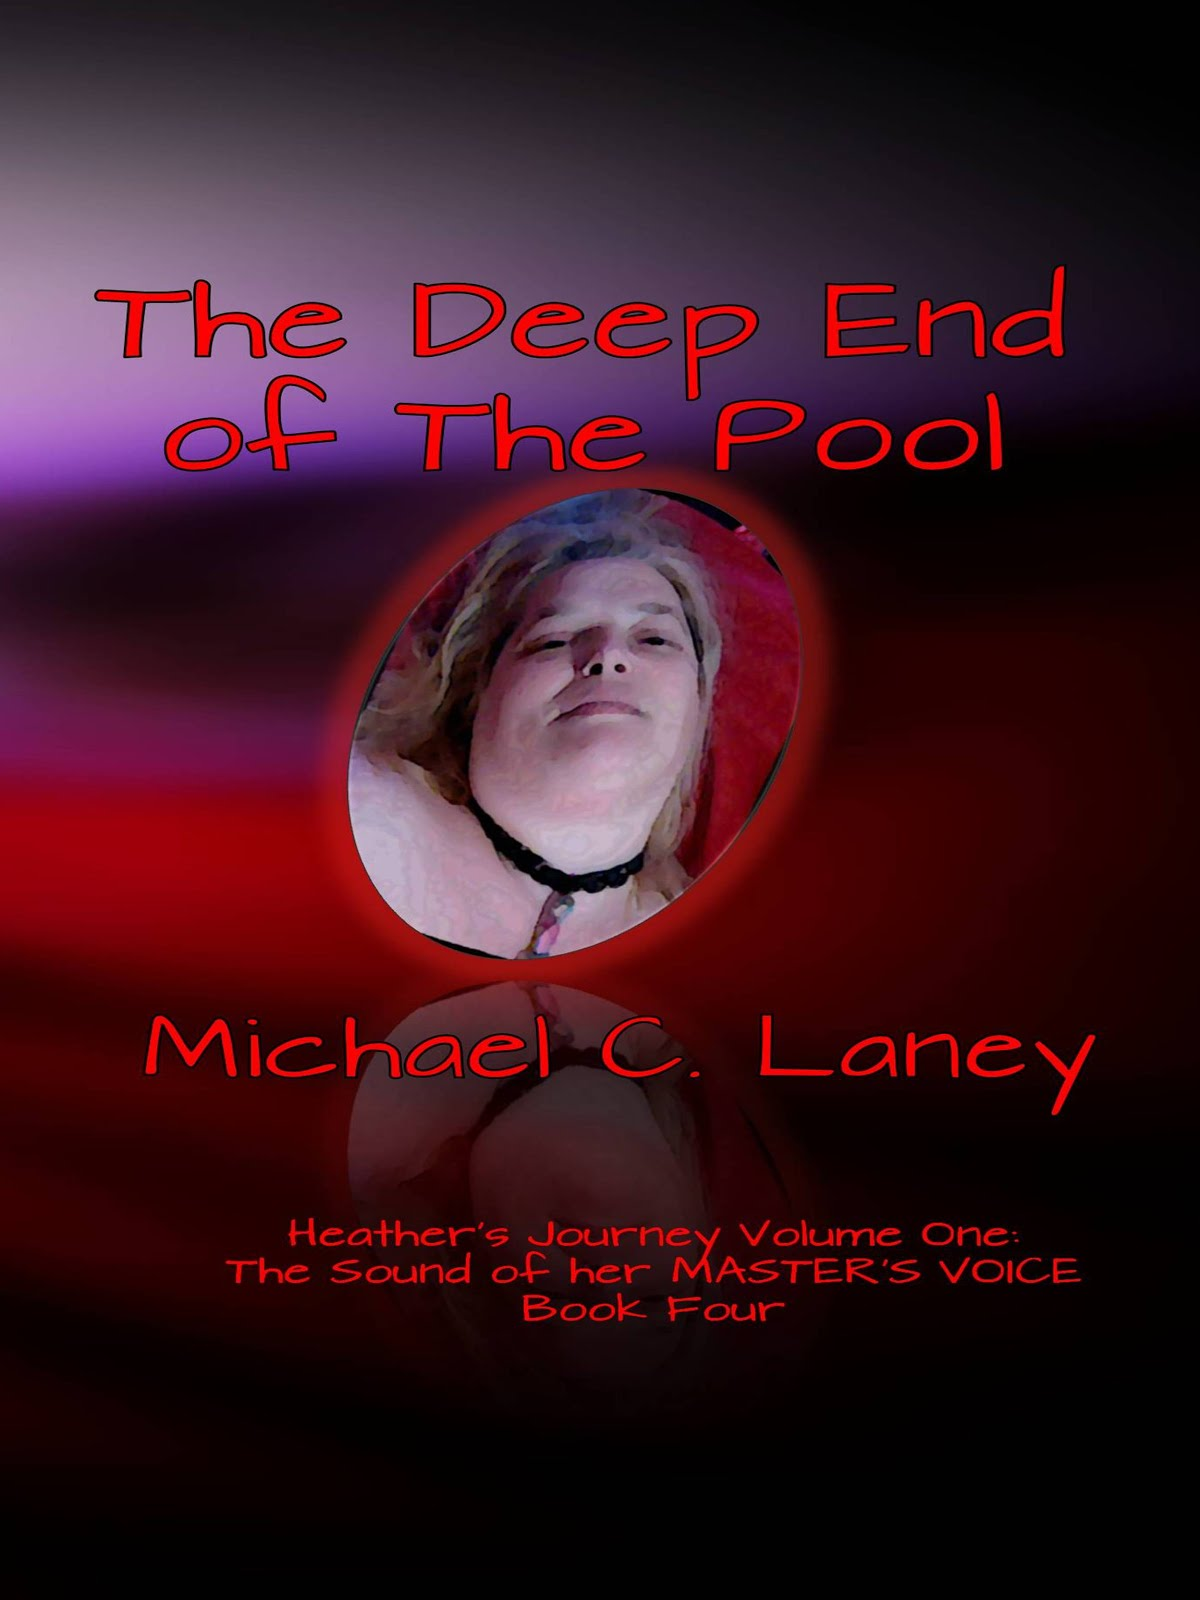 New Release! The Deep End of the Pool